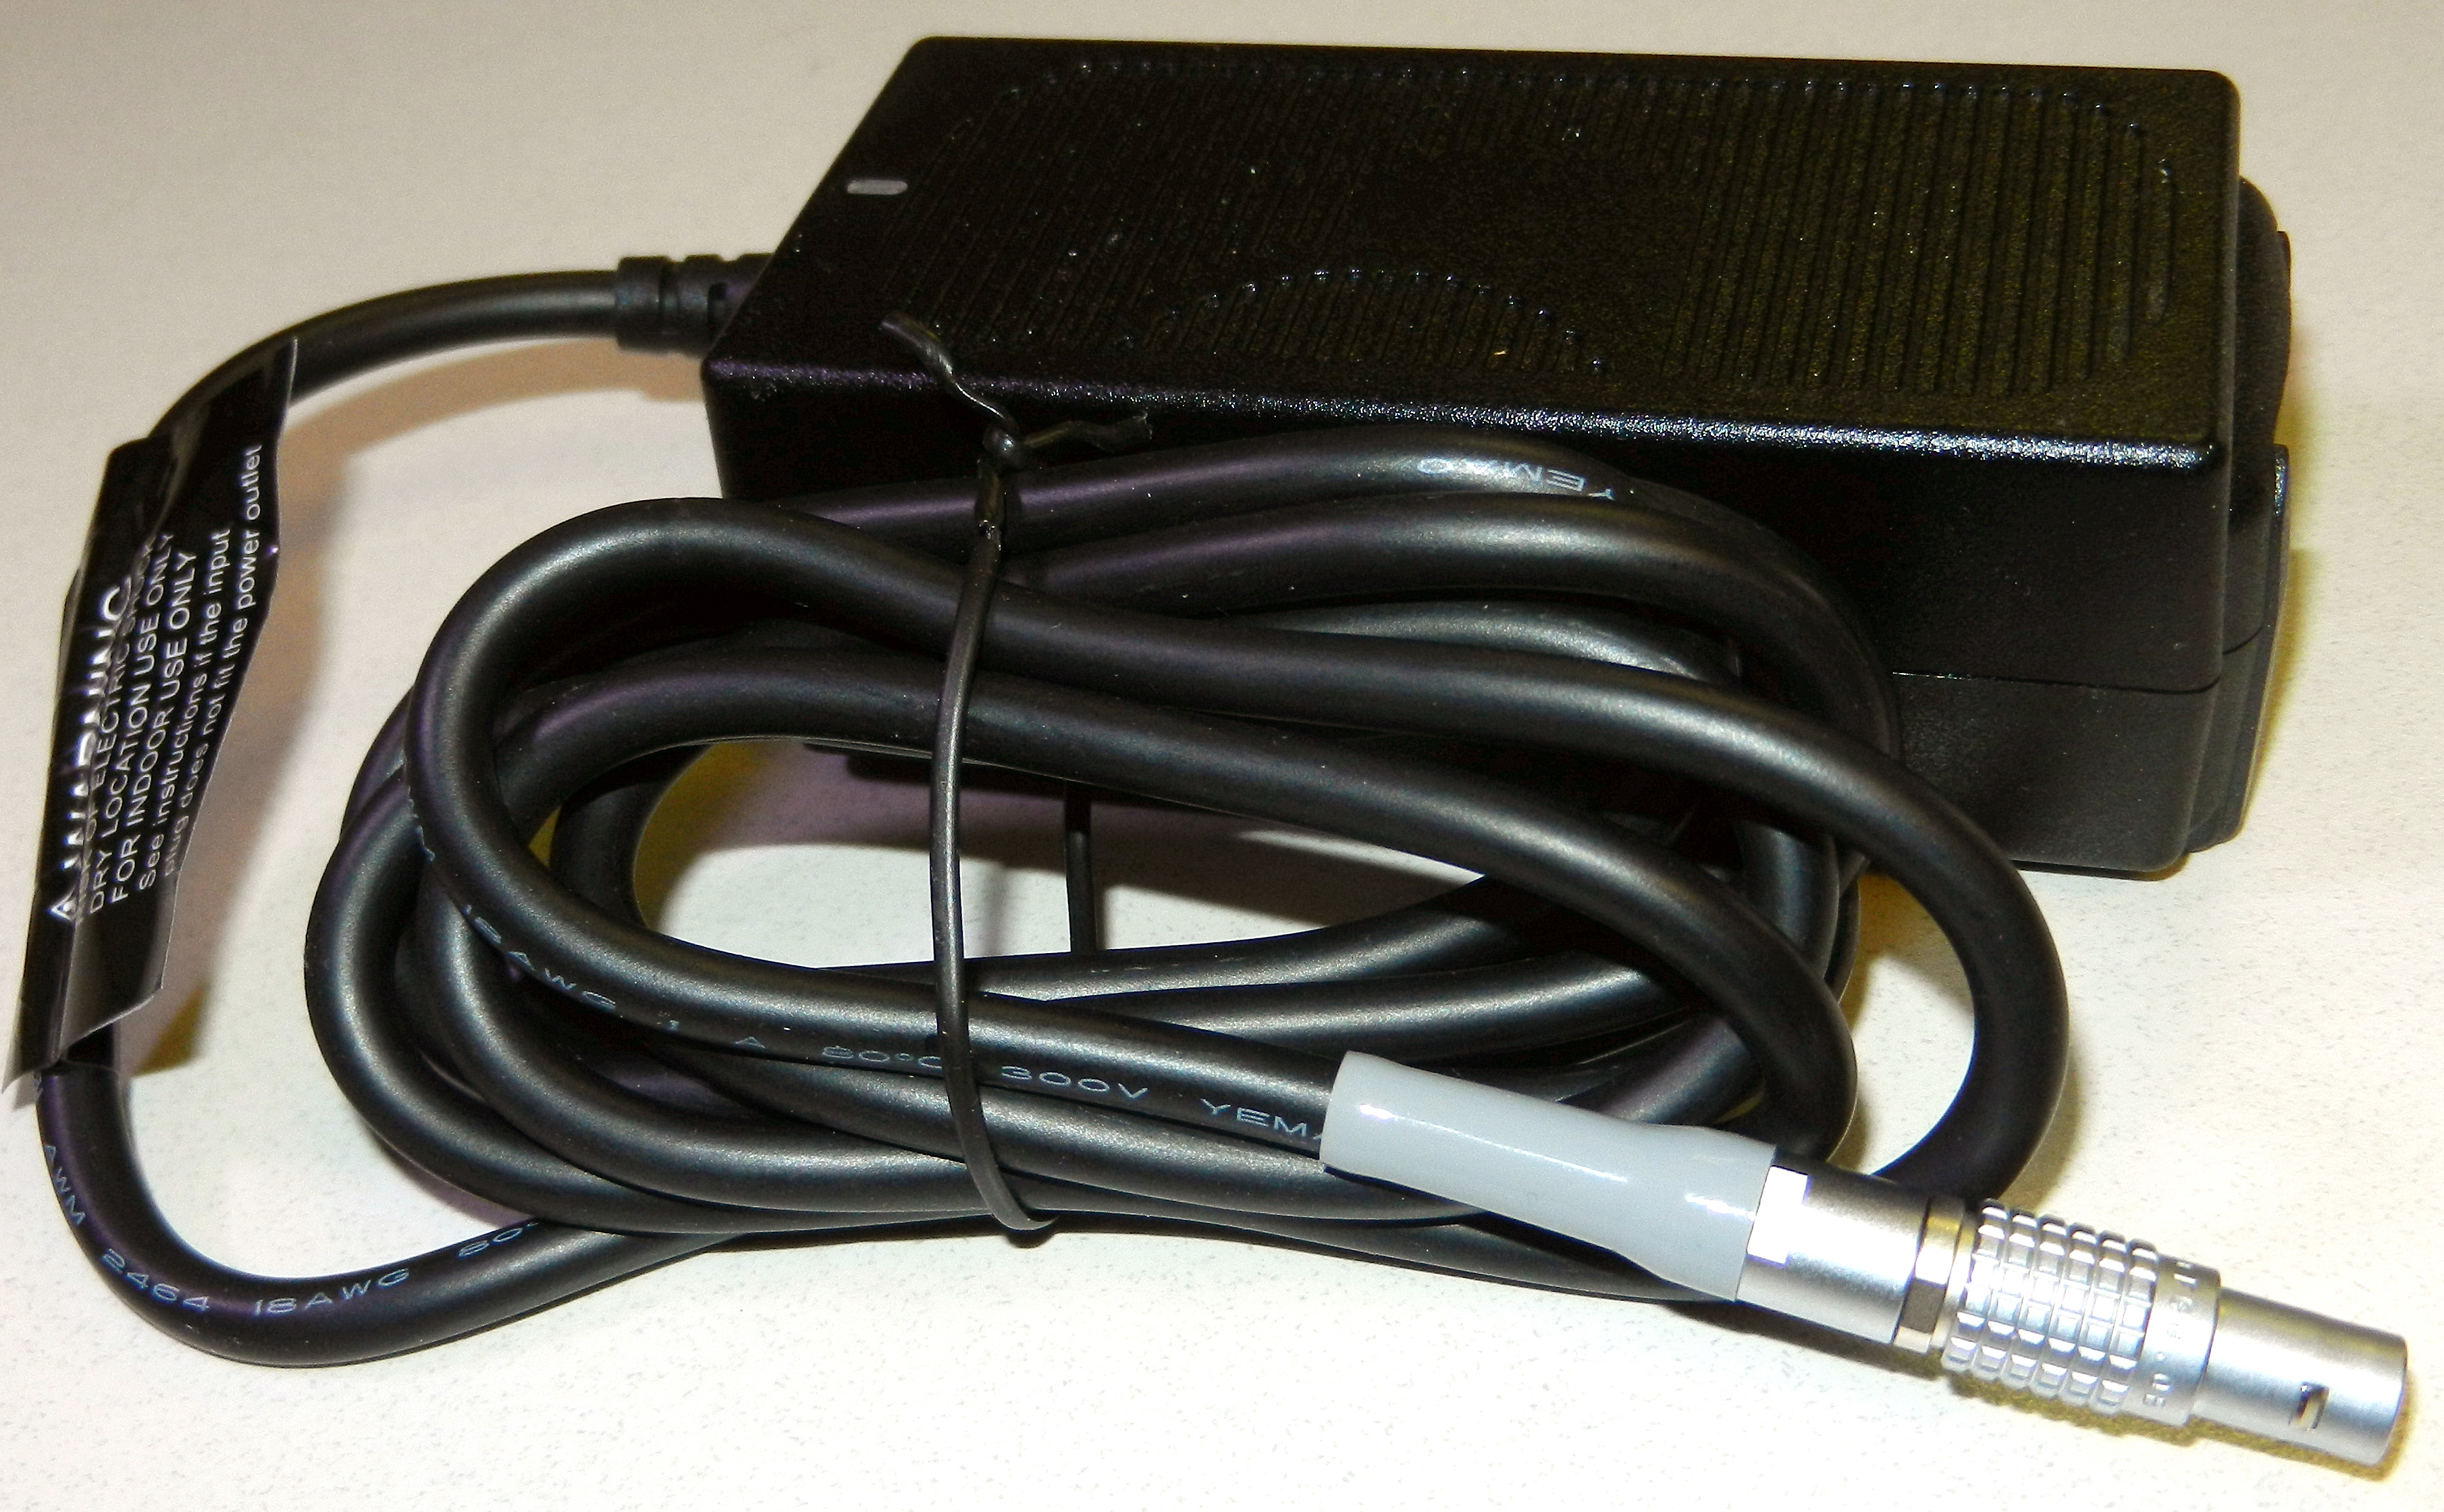 Power Cable Assemblies : Globtek offers power supplies and cable assemblies with